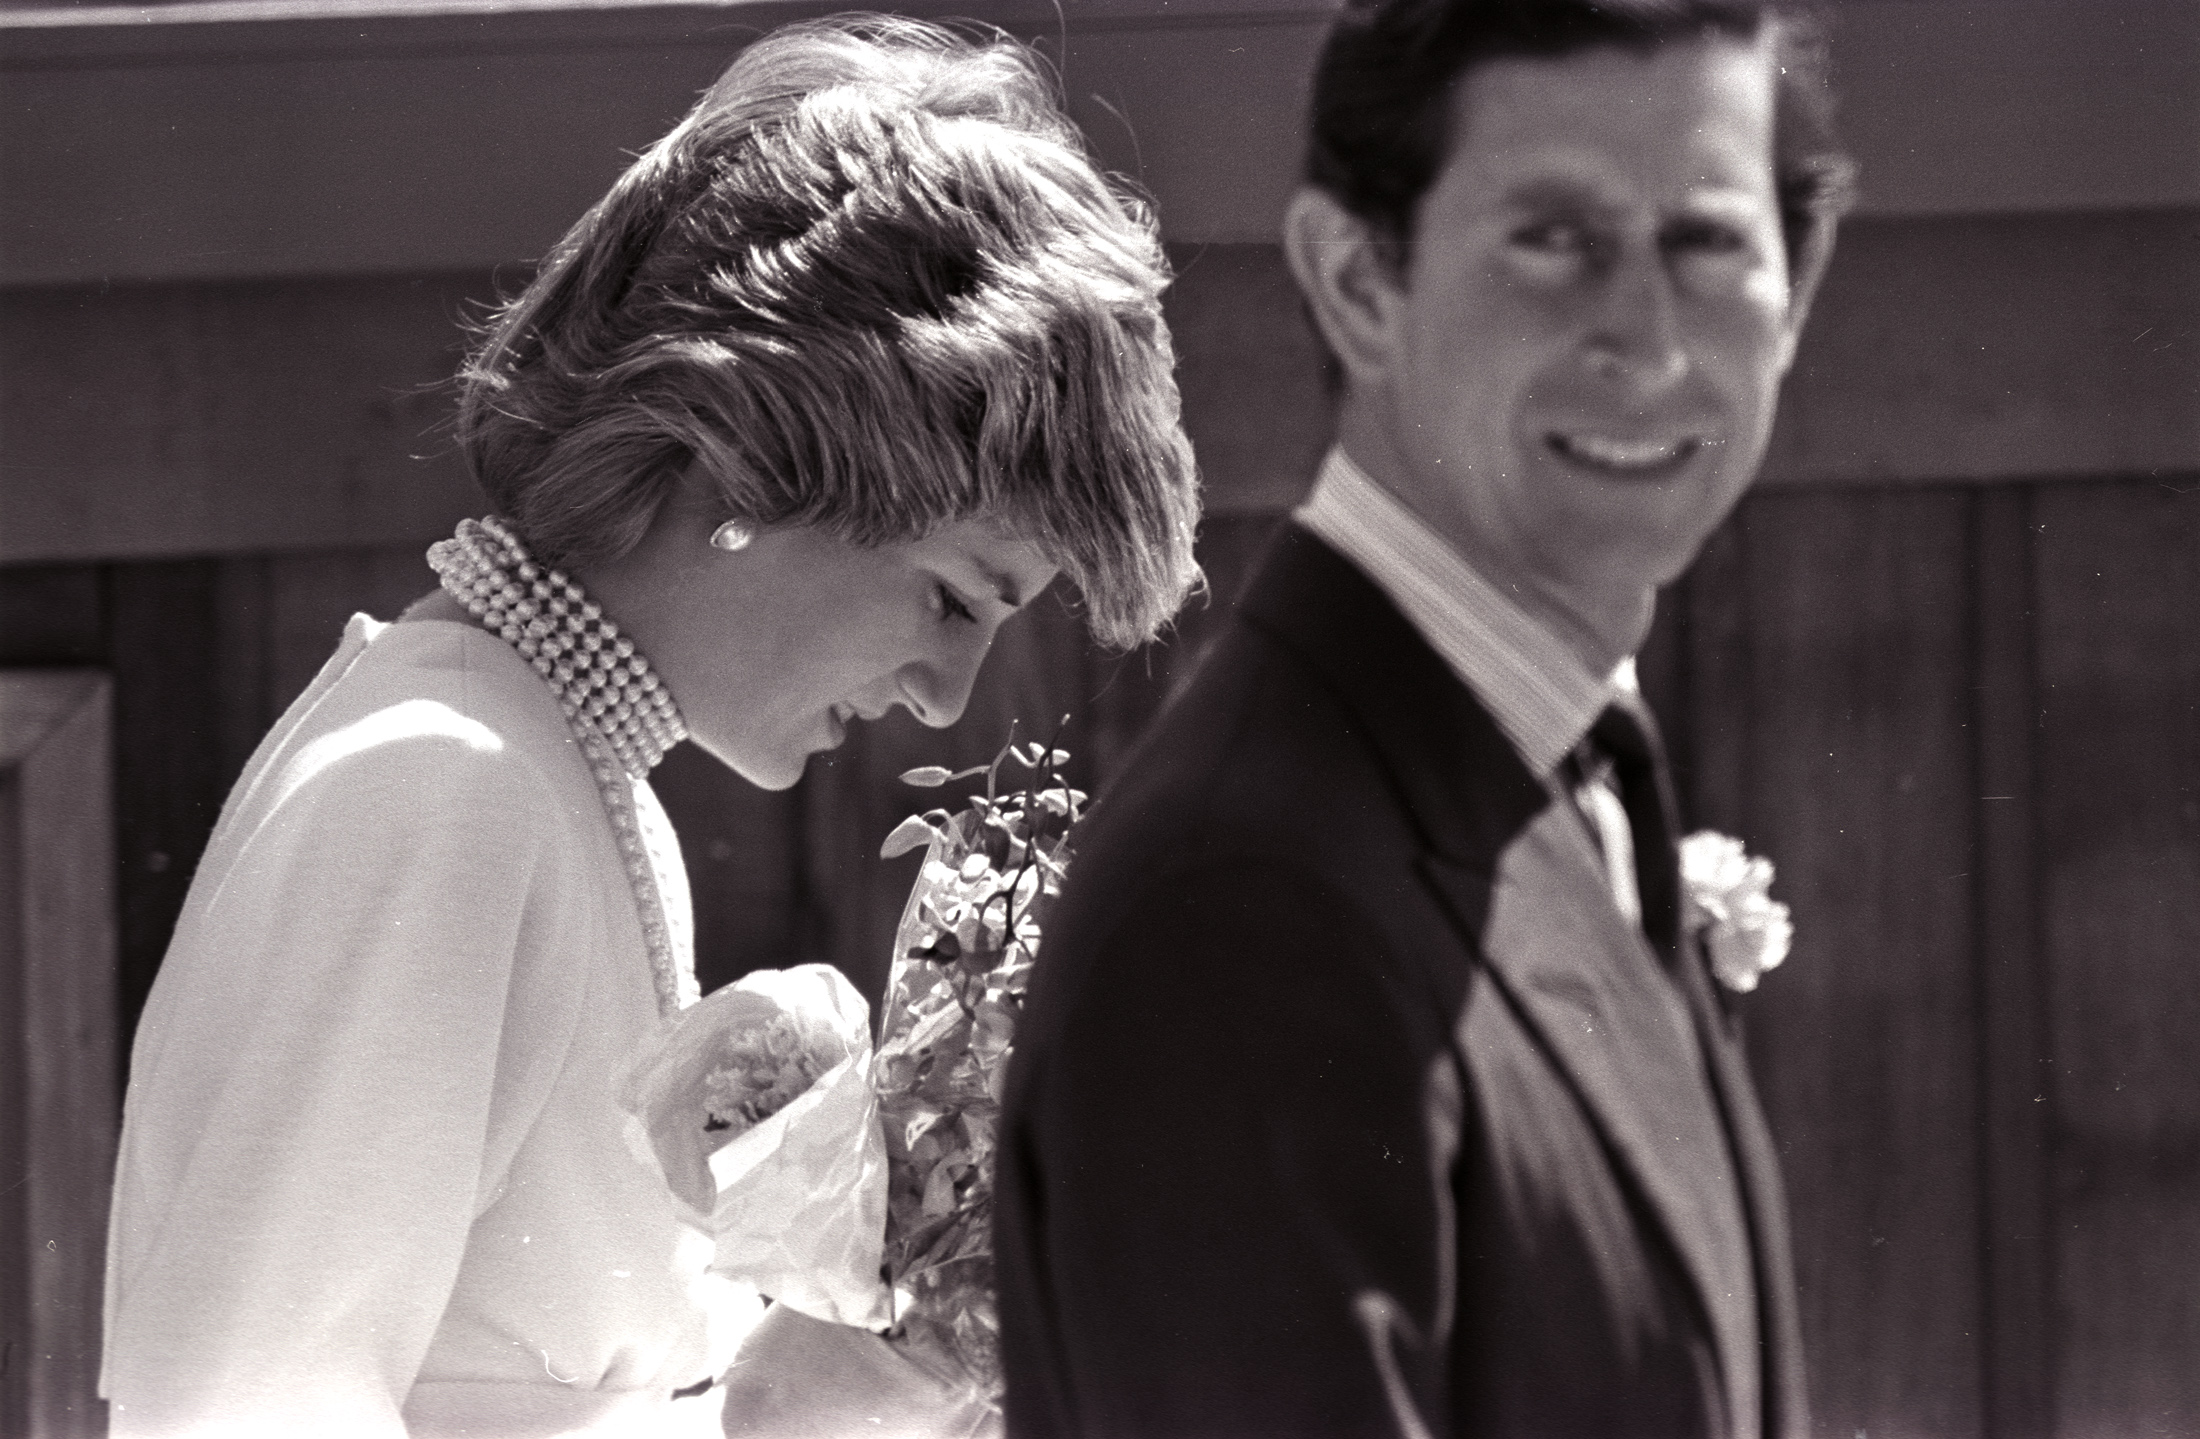 Princess Diana and Prince Charles visit Vancouver on May 6, 1986. Photo by Mike Blake/Reuters